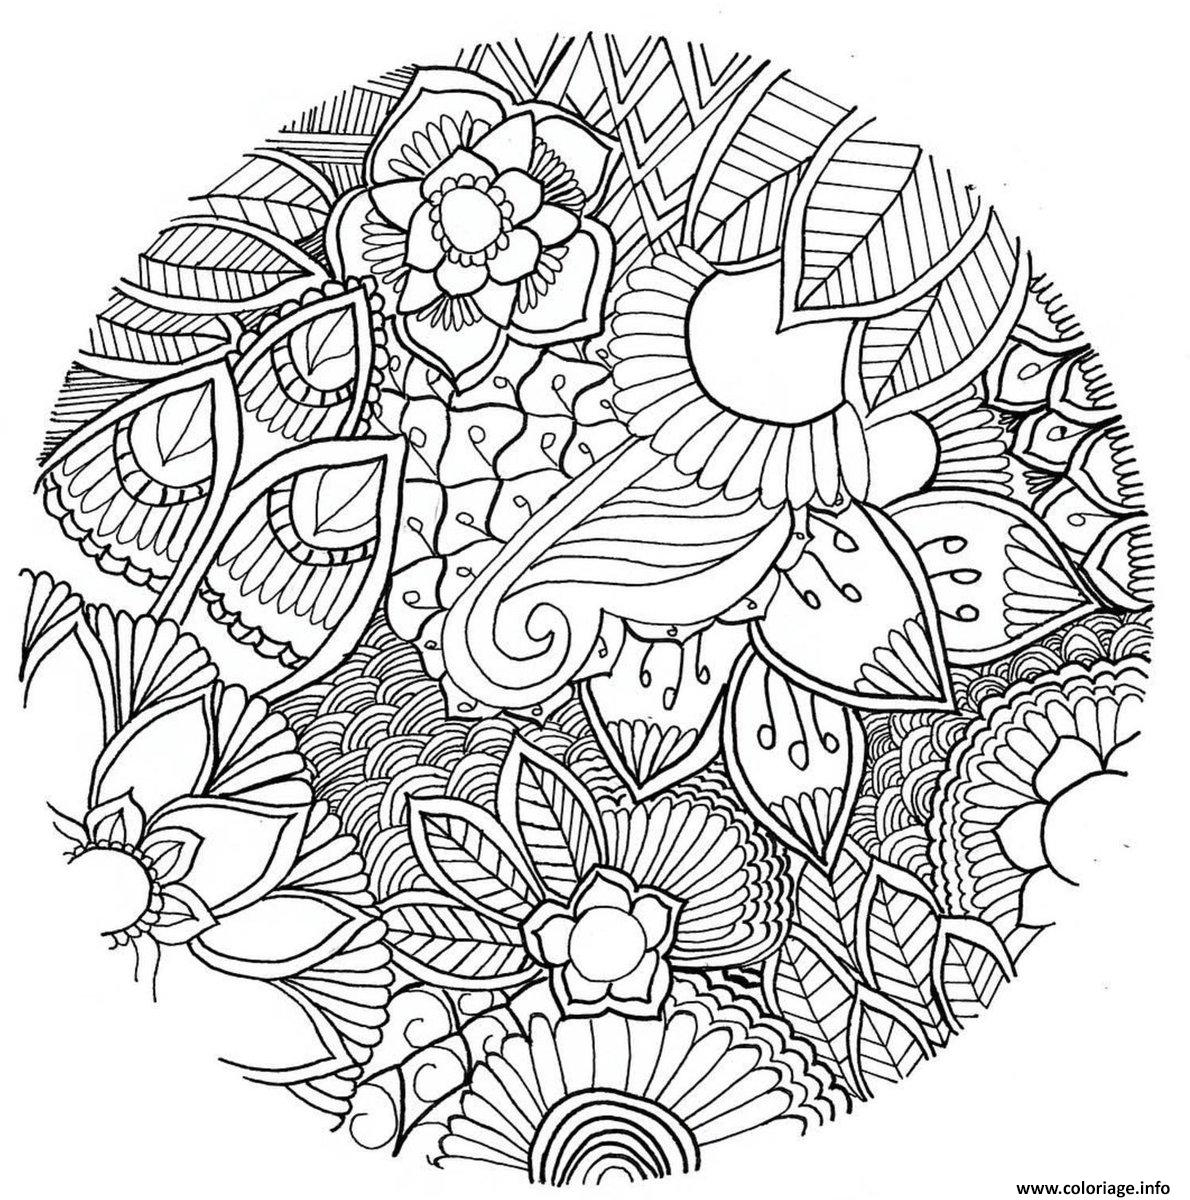 coloriage mandala fleurs vegetales foret adulte. Black Bedroom Furniture Sets. Home Design Ideas